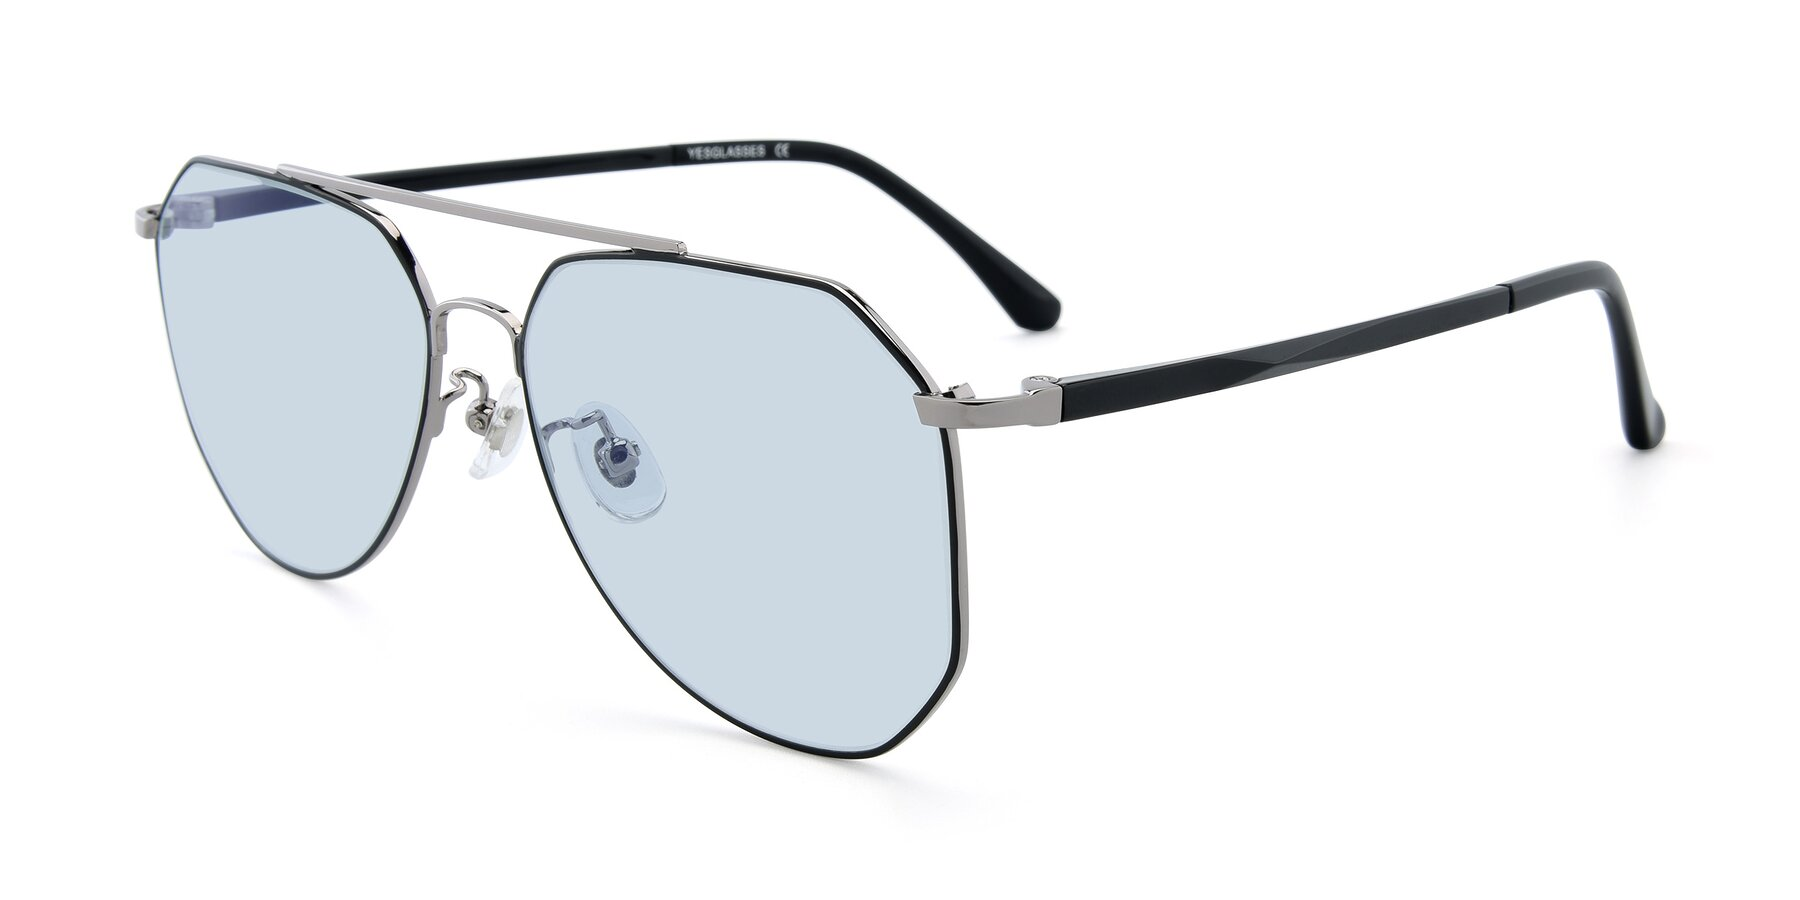 Angle of XC-8040 in Black/ Gun with Light Blue Tinted Lenses